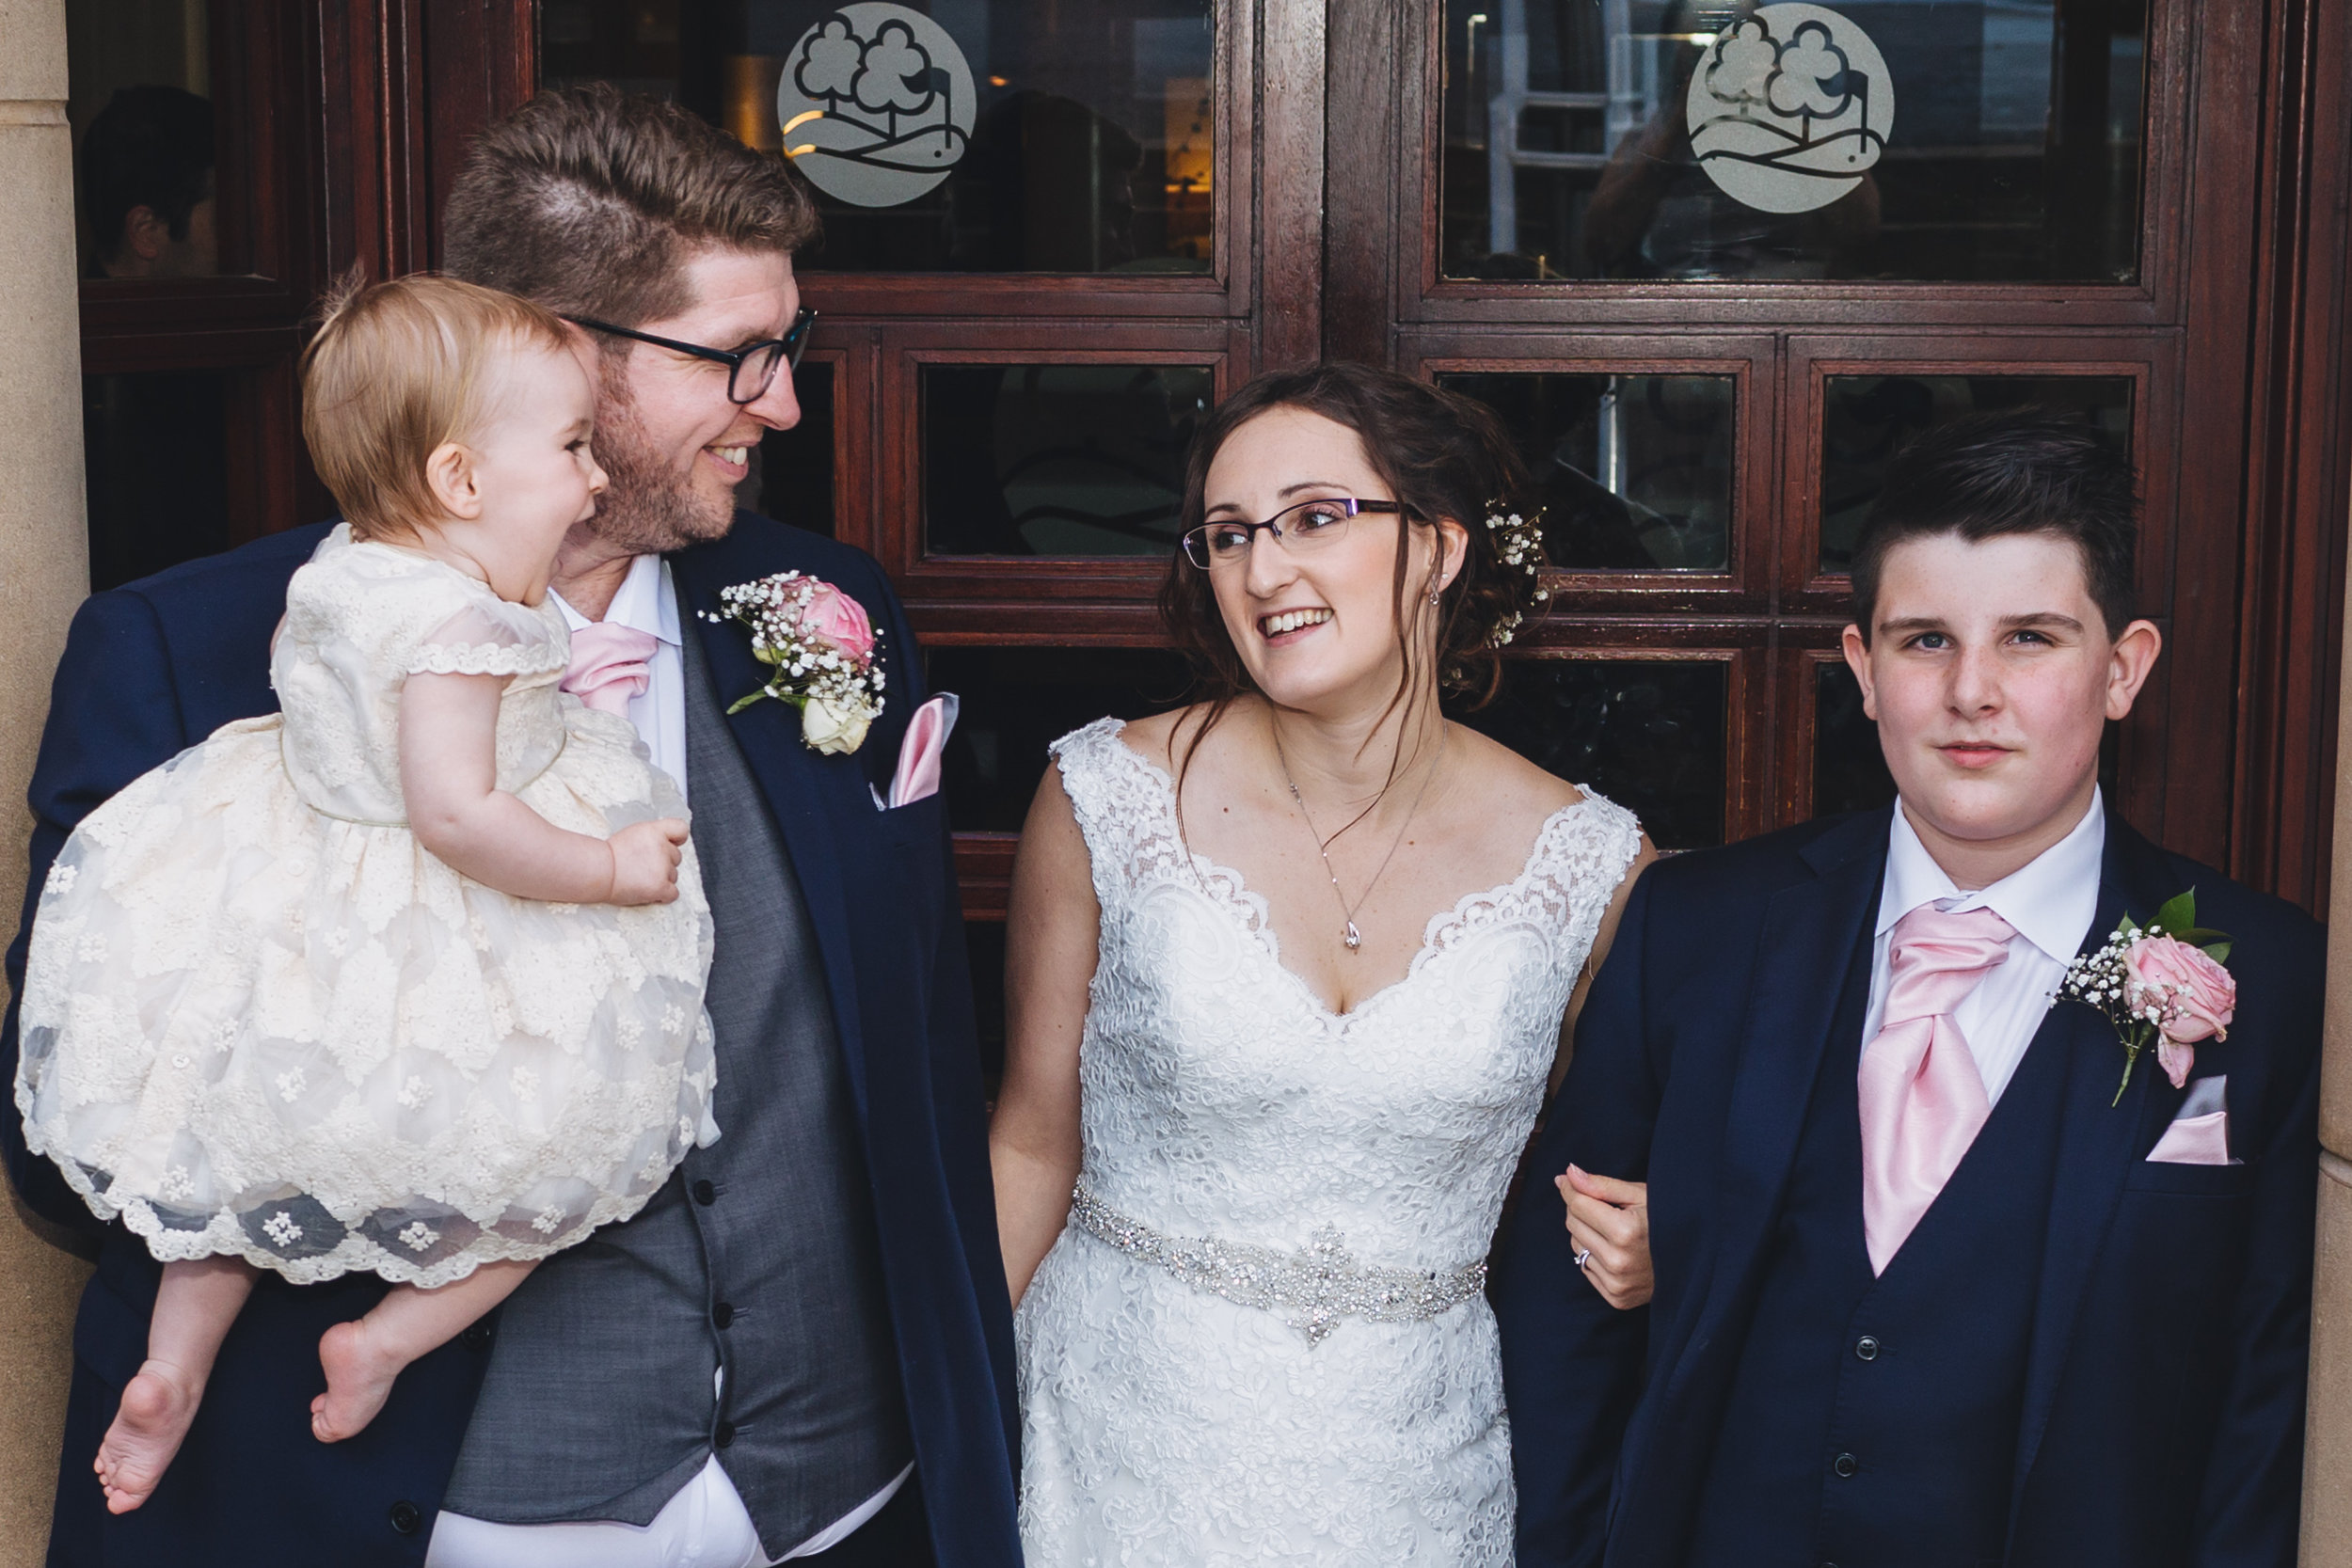 Bryn meadows Golf Club wedding photos. Wedding photographer Caerphilly, Cardiff, Newbridge, Bryn meadows, South Wales